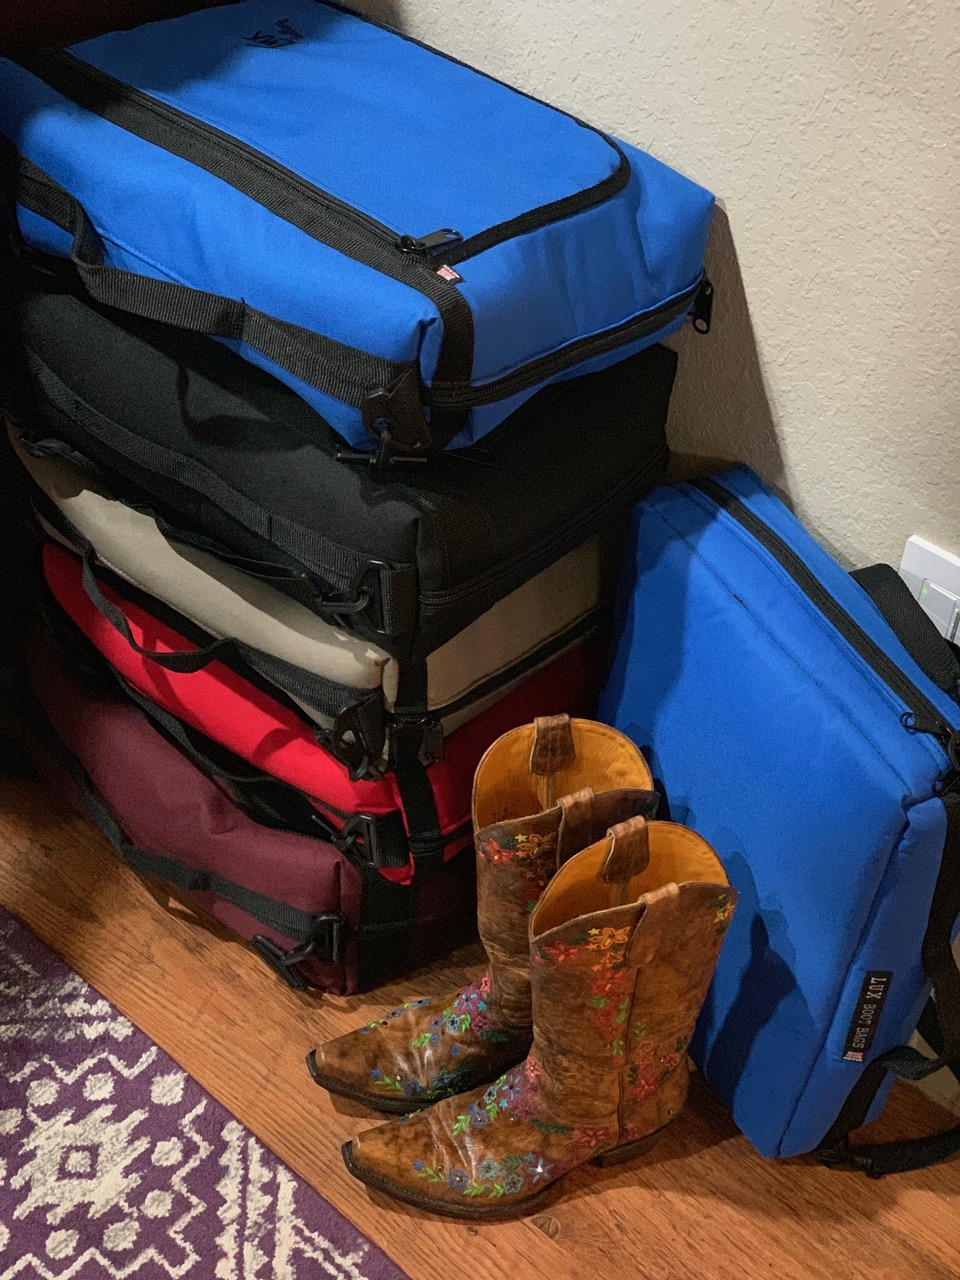 Pack, Stack, Store, Grab & Go!! - Another BONUS…just think about this…You can STACK more of your boots in LuxBootBags adding MORE space for sweet additions to your Boot Collection! PLUS, have them packed and ready to go at a moments notice!